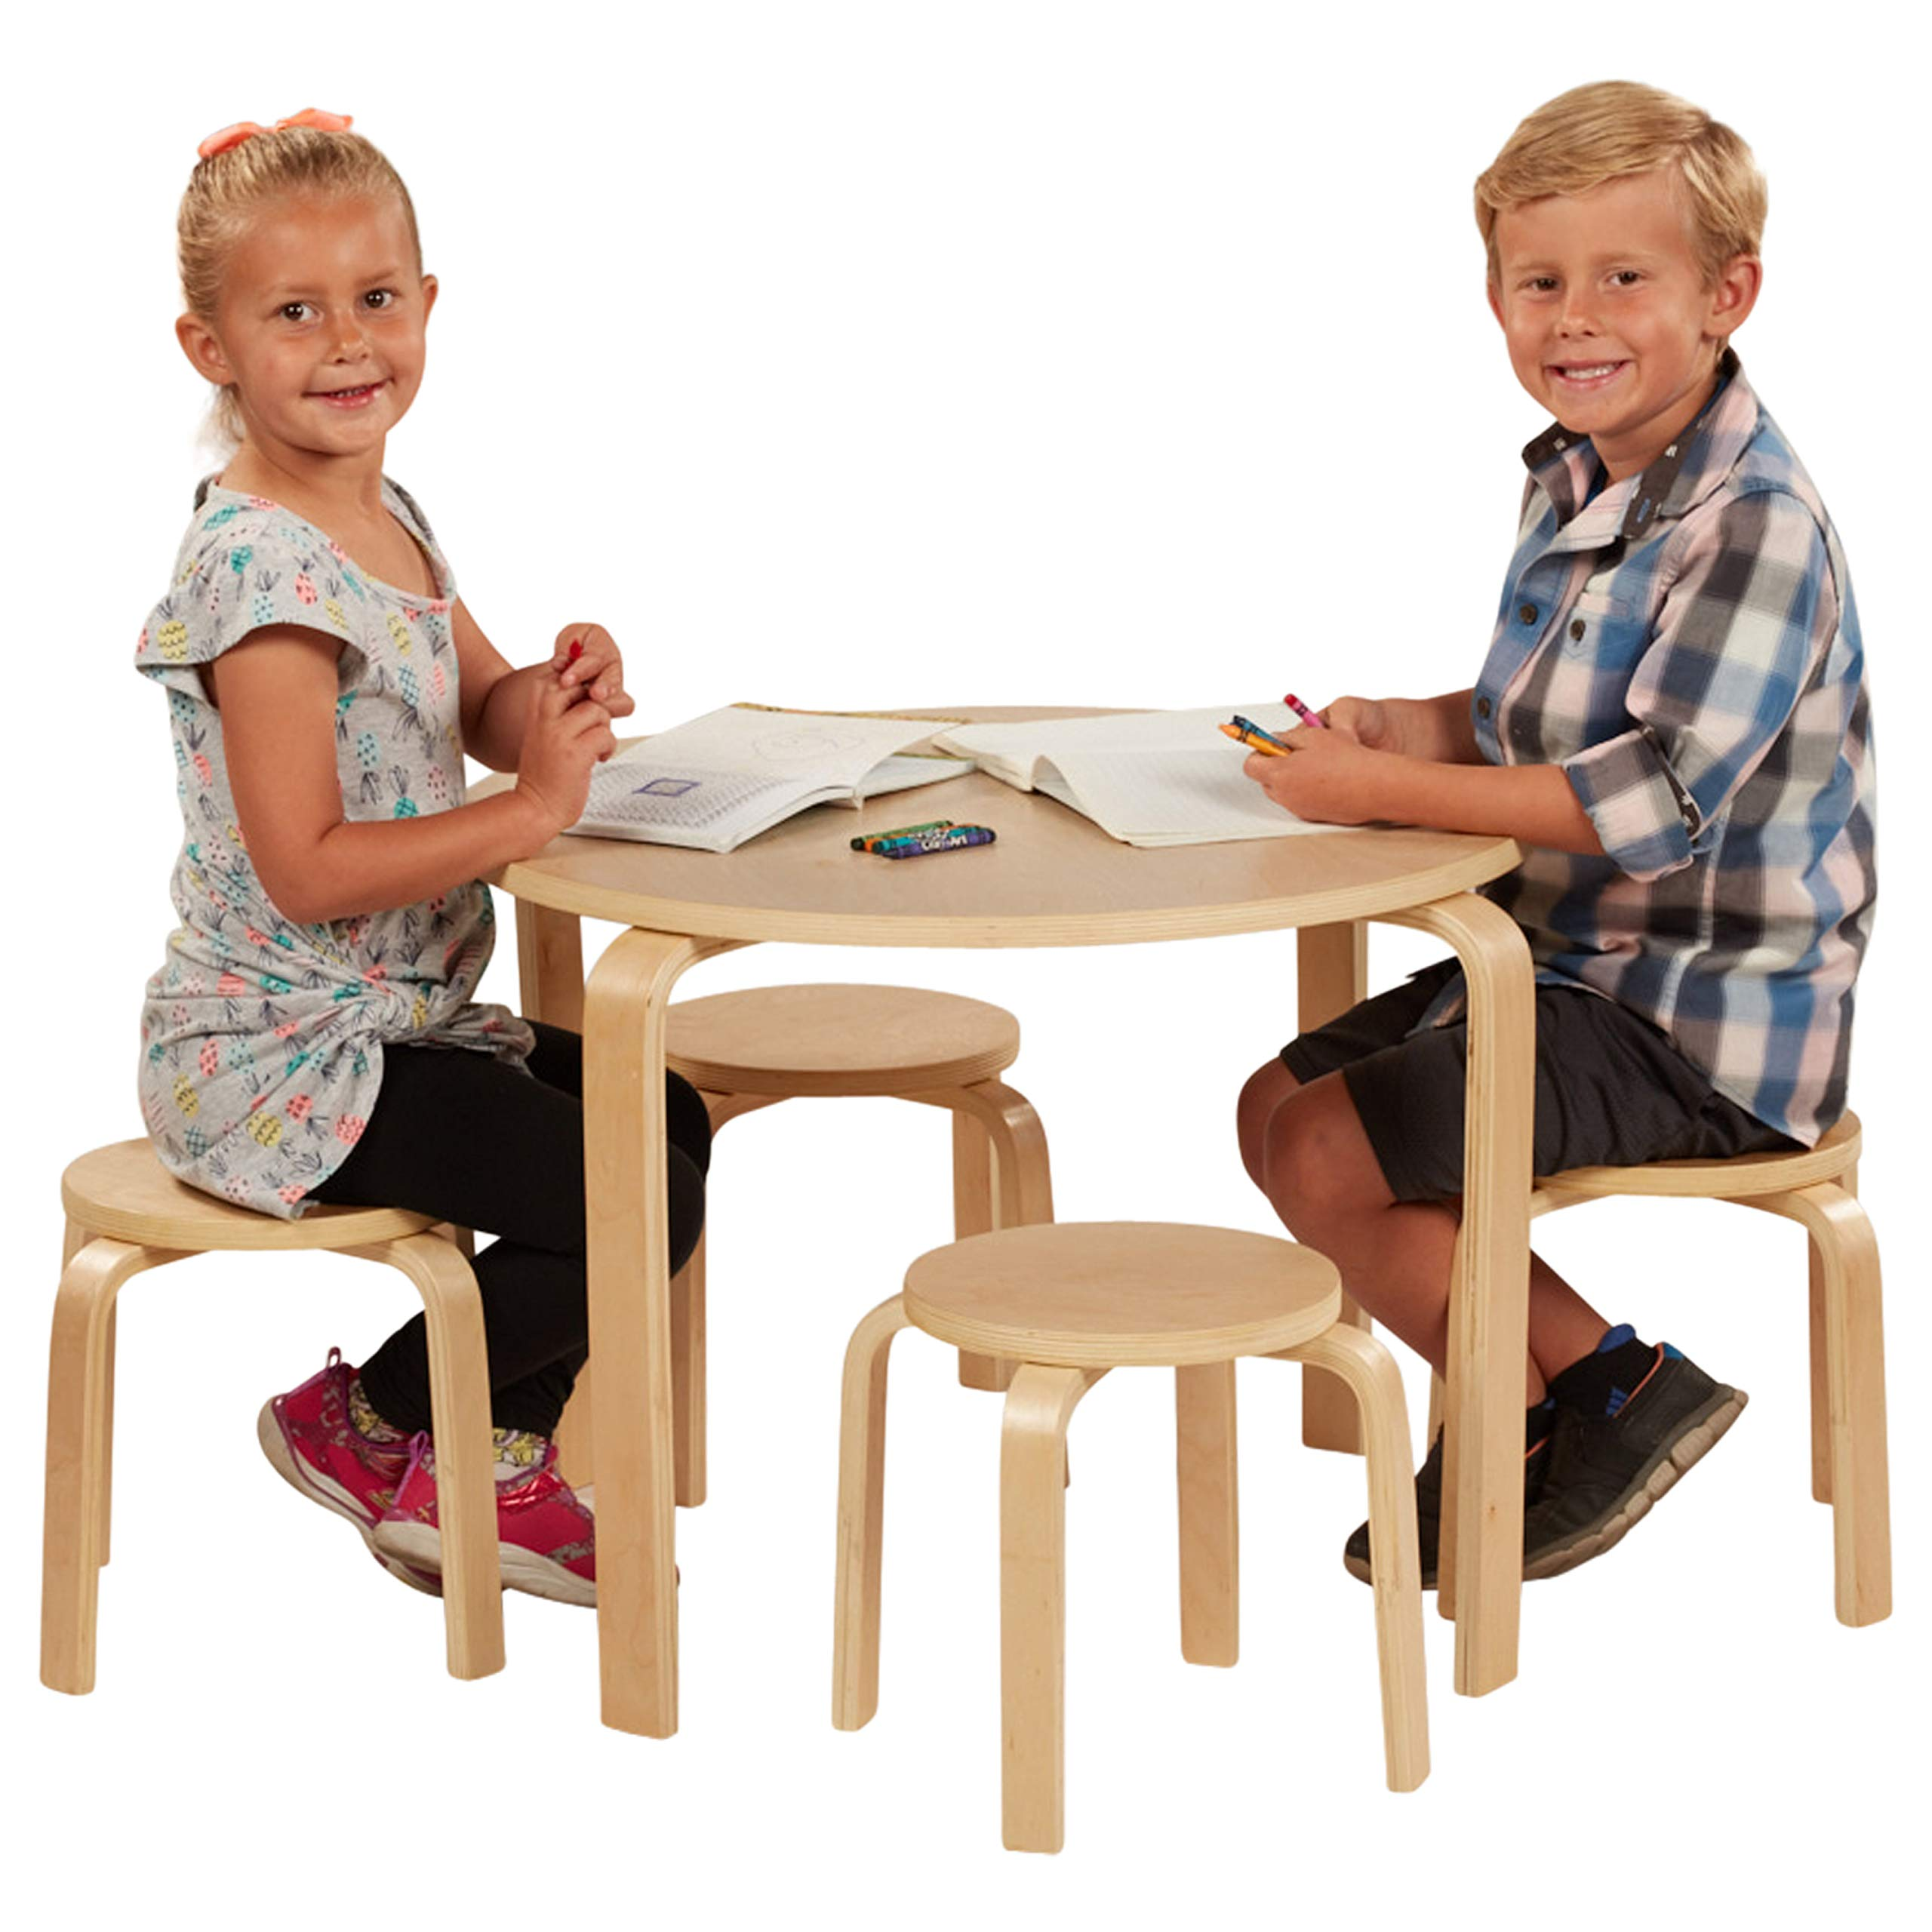 ECR4Kids Bentwood Table and Stool Set for Kids, Natural (5-Piece Set) by ECR4Kids